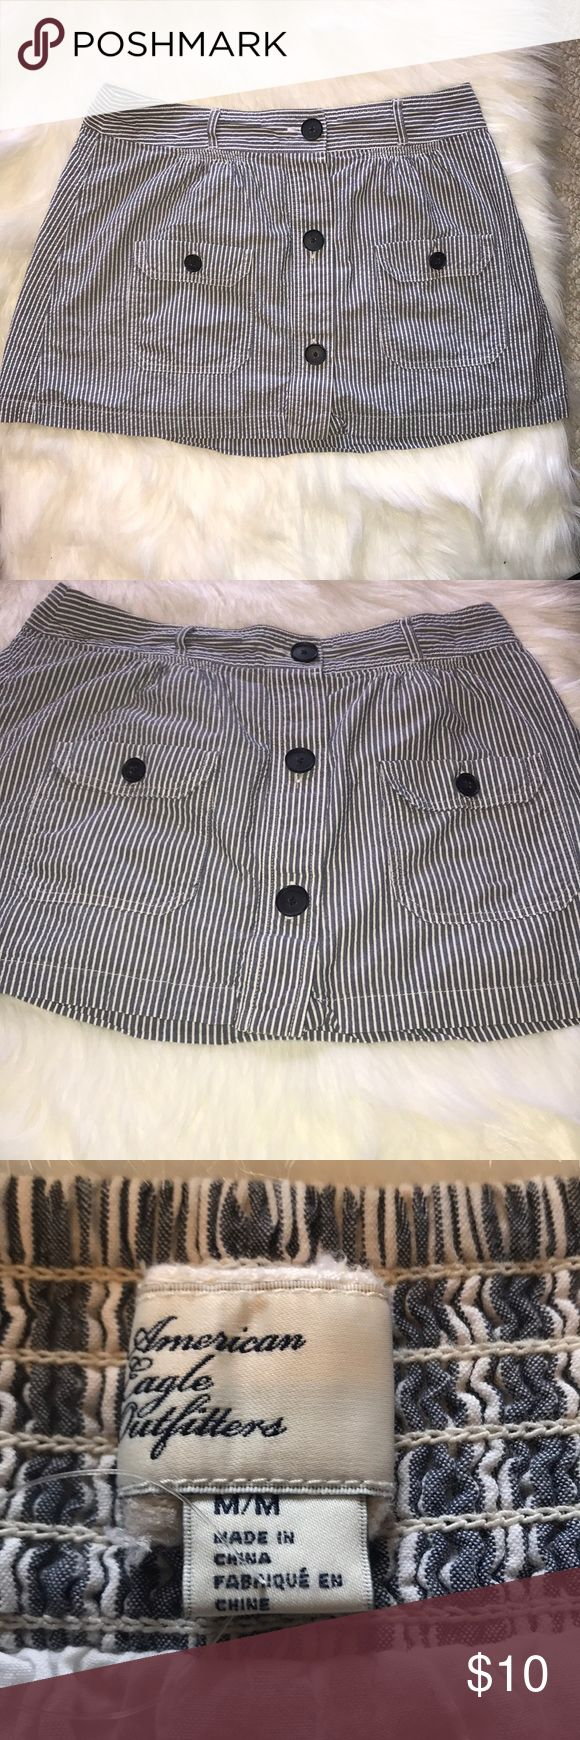 Mini Skirt American Eagle Outfitters cotton stripped mini skirt with elastic waist that has belt loops. American Eagle Outfitters Skirts Mini